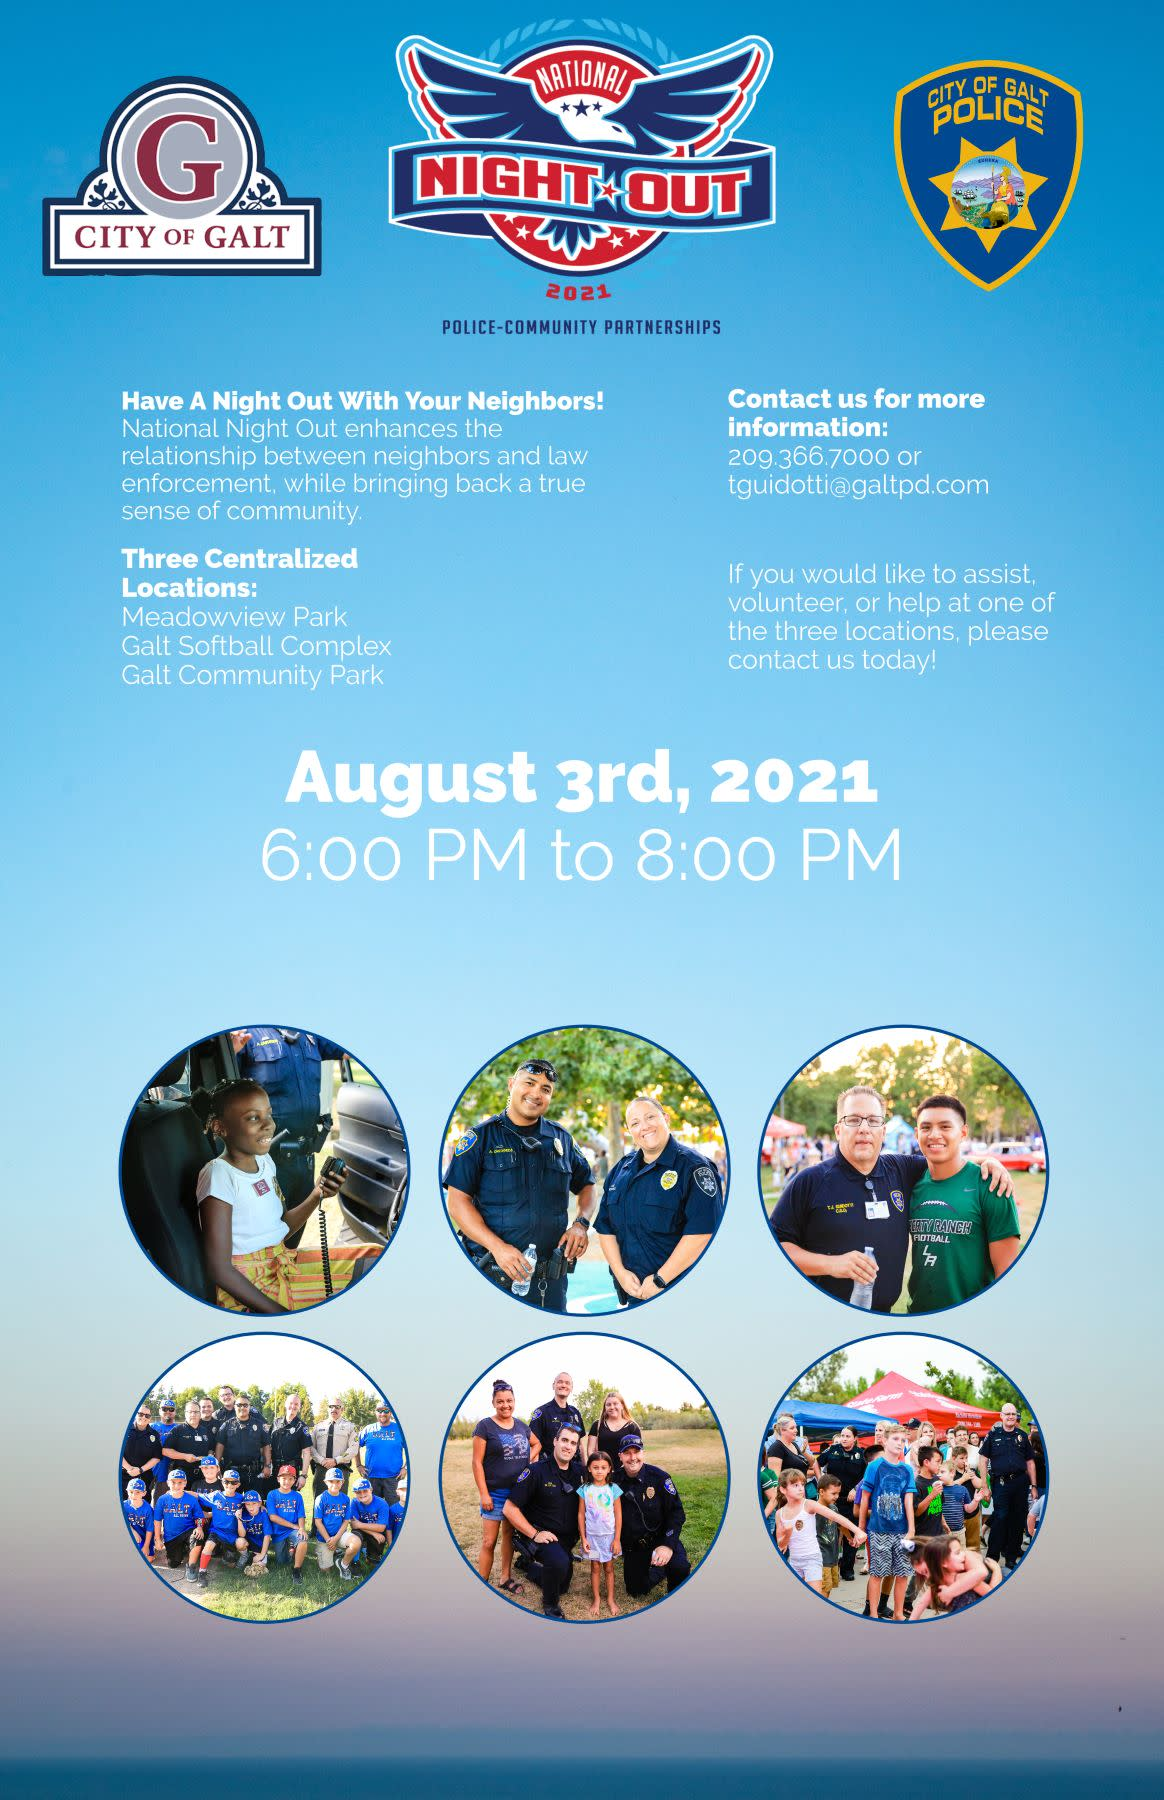 National Night Out flyer - August 3rd from 6:30 to 8:30 pm